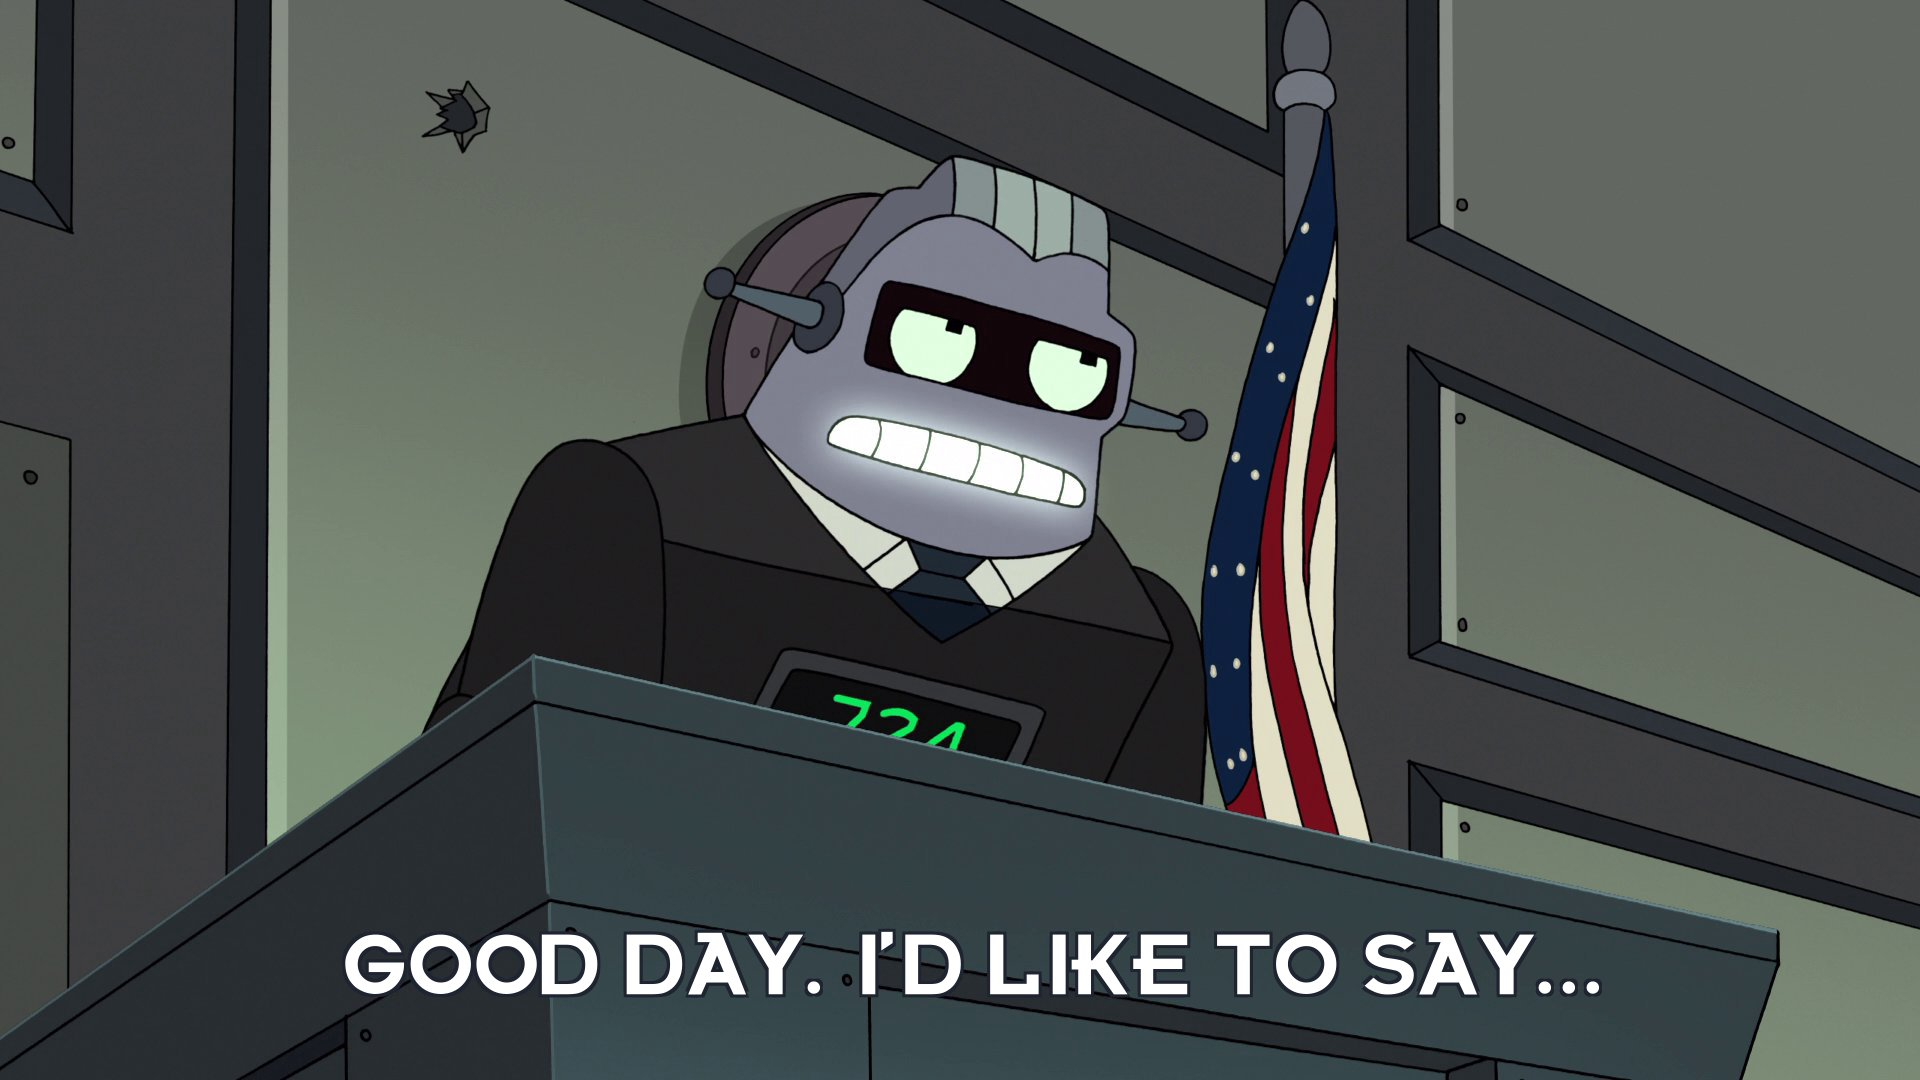 Judge 724: Good day. I'd like to say...